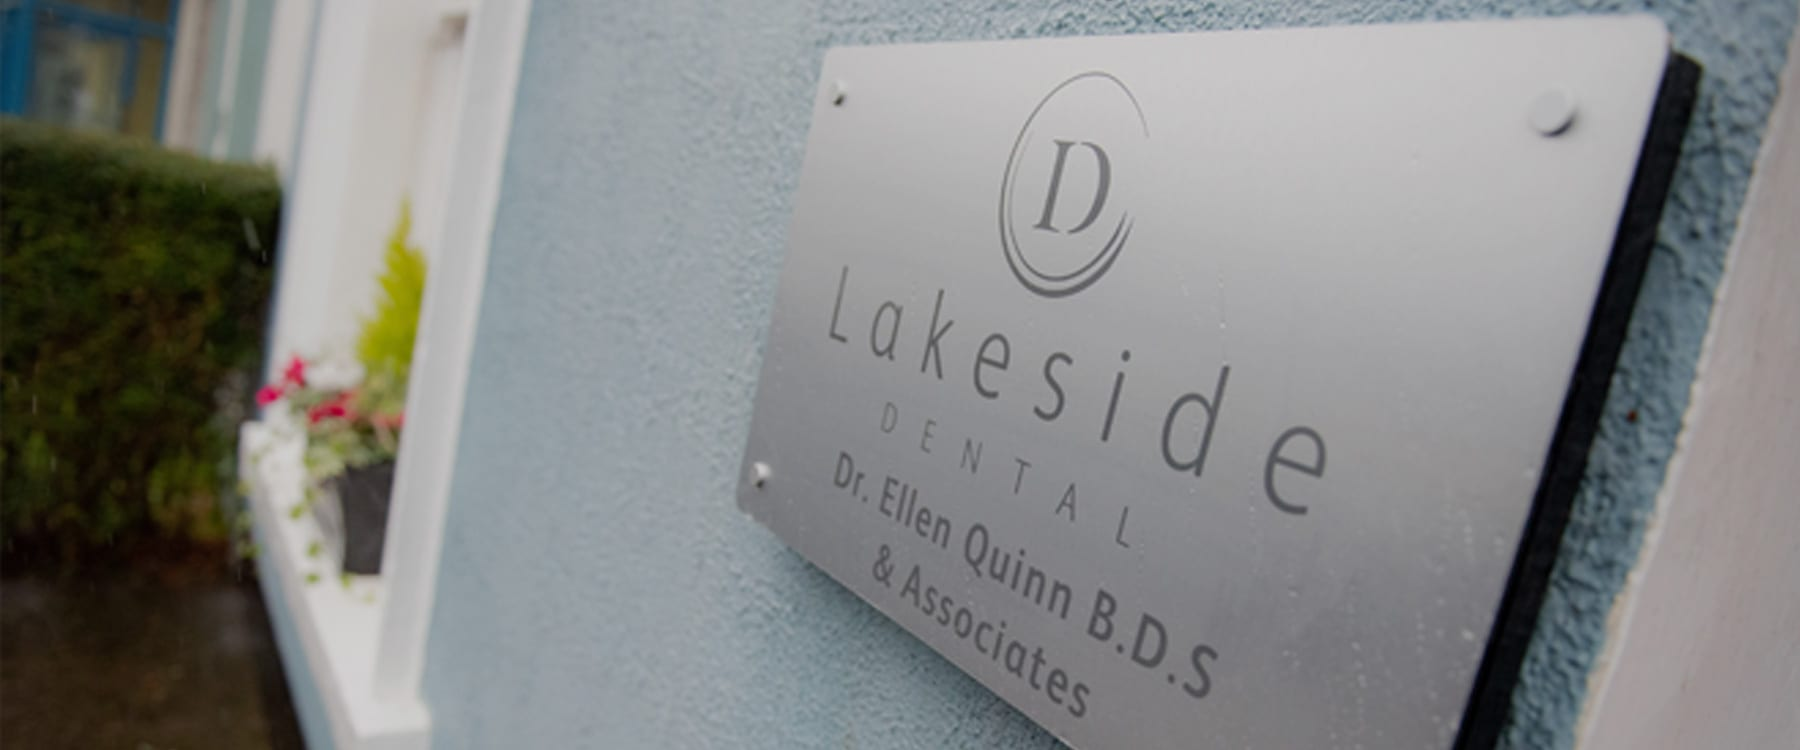 Lakeside Dental Image Second